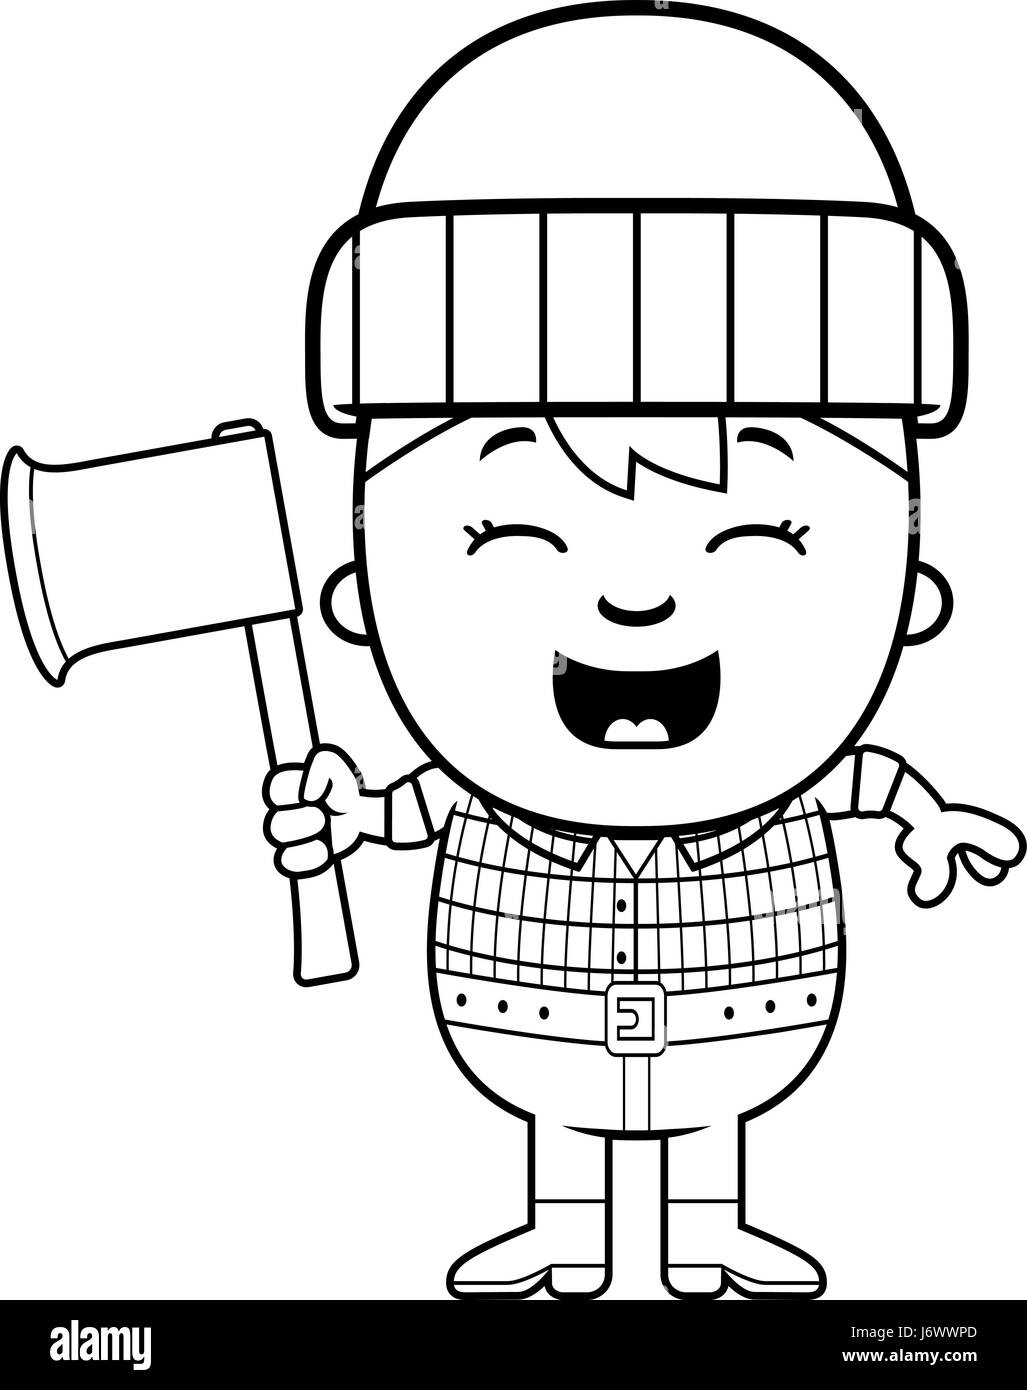 cartoon illustration little lumberjack smiling stock photos  a cartoon illustration of a little lumberjack with an axe stock image